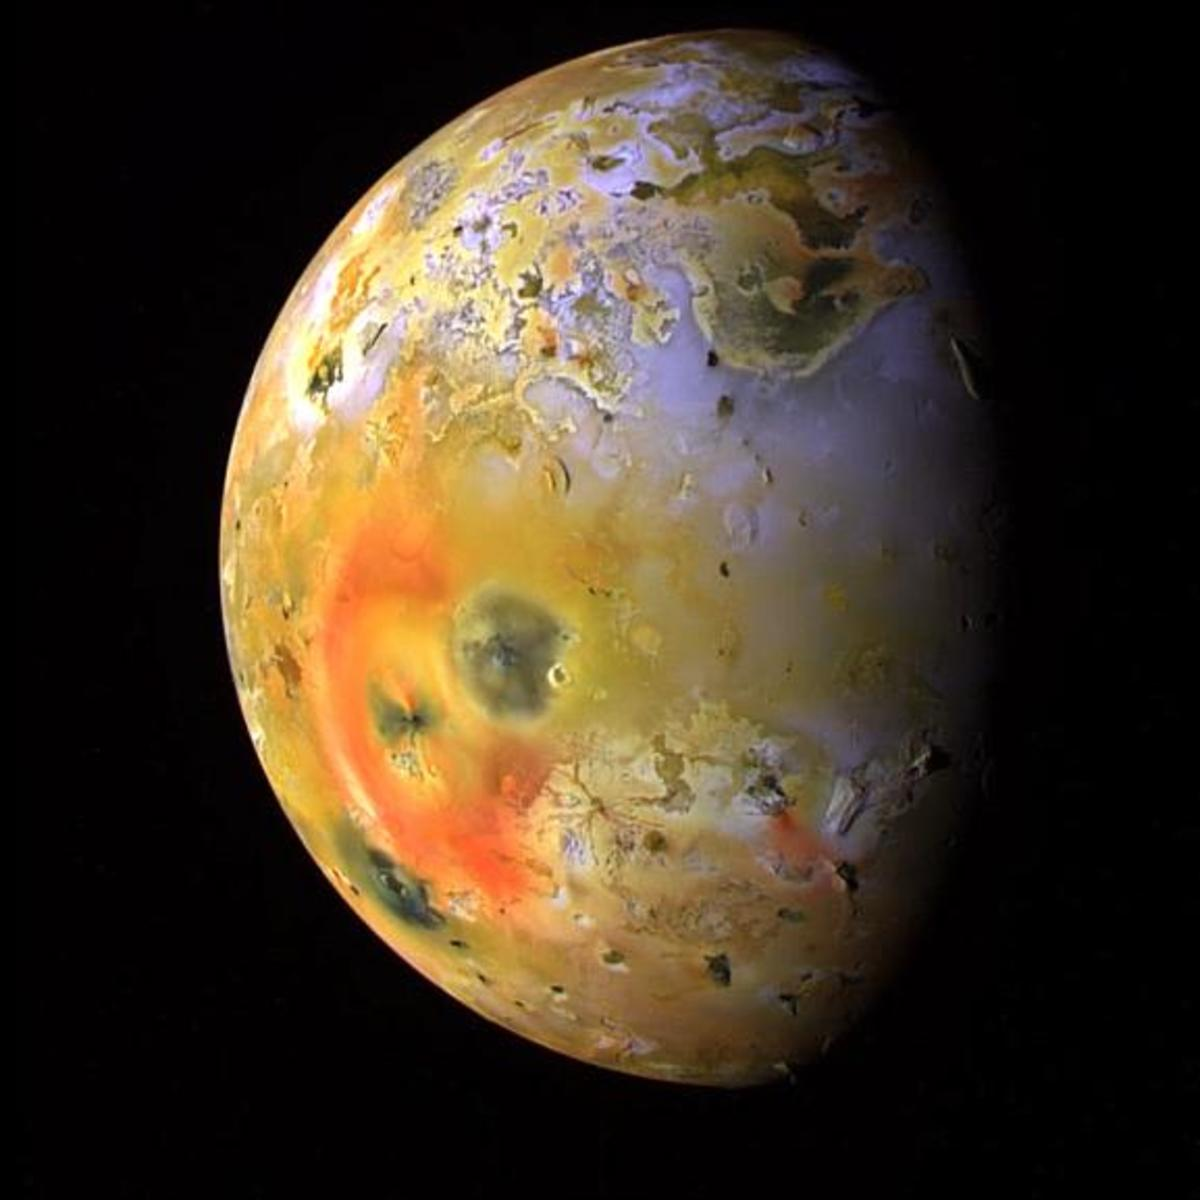 A world in turmoil - nowhere in the Solar System is more geologically active than Jupiter's innermost moon, Io (Galileo image)